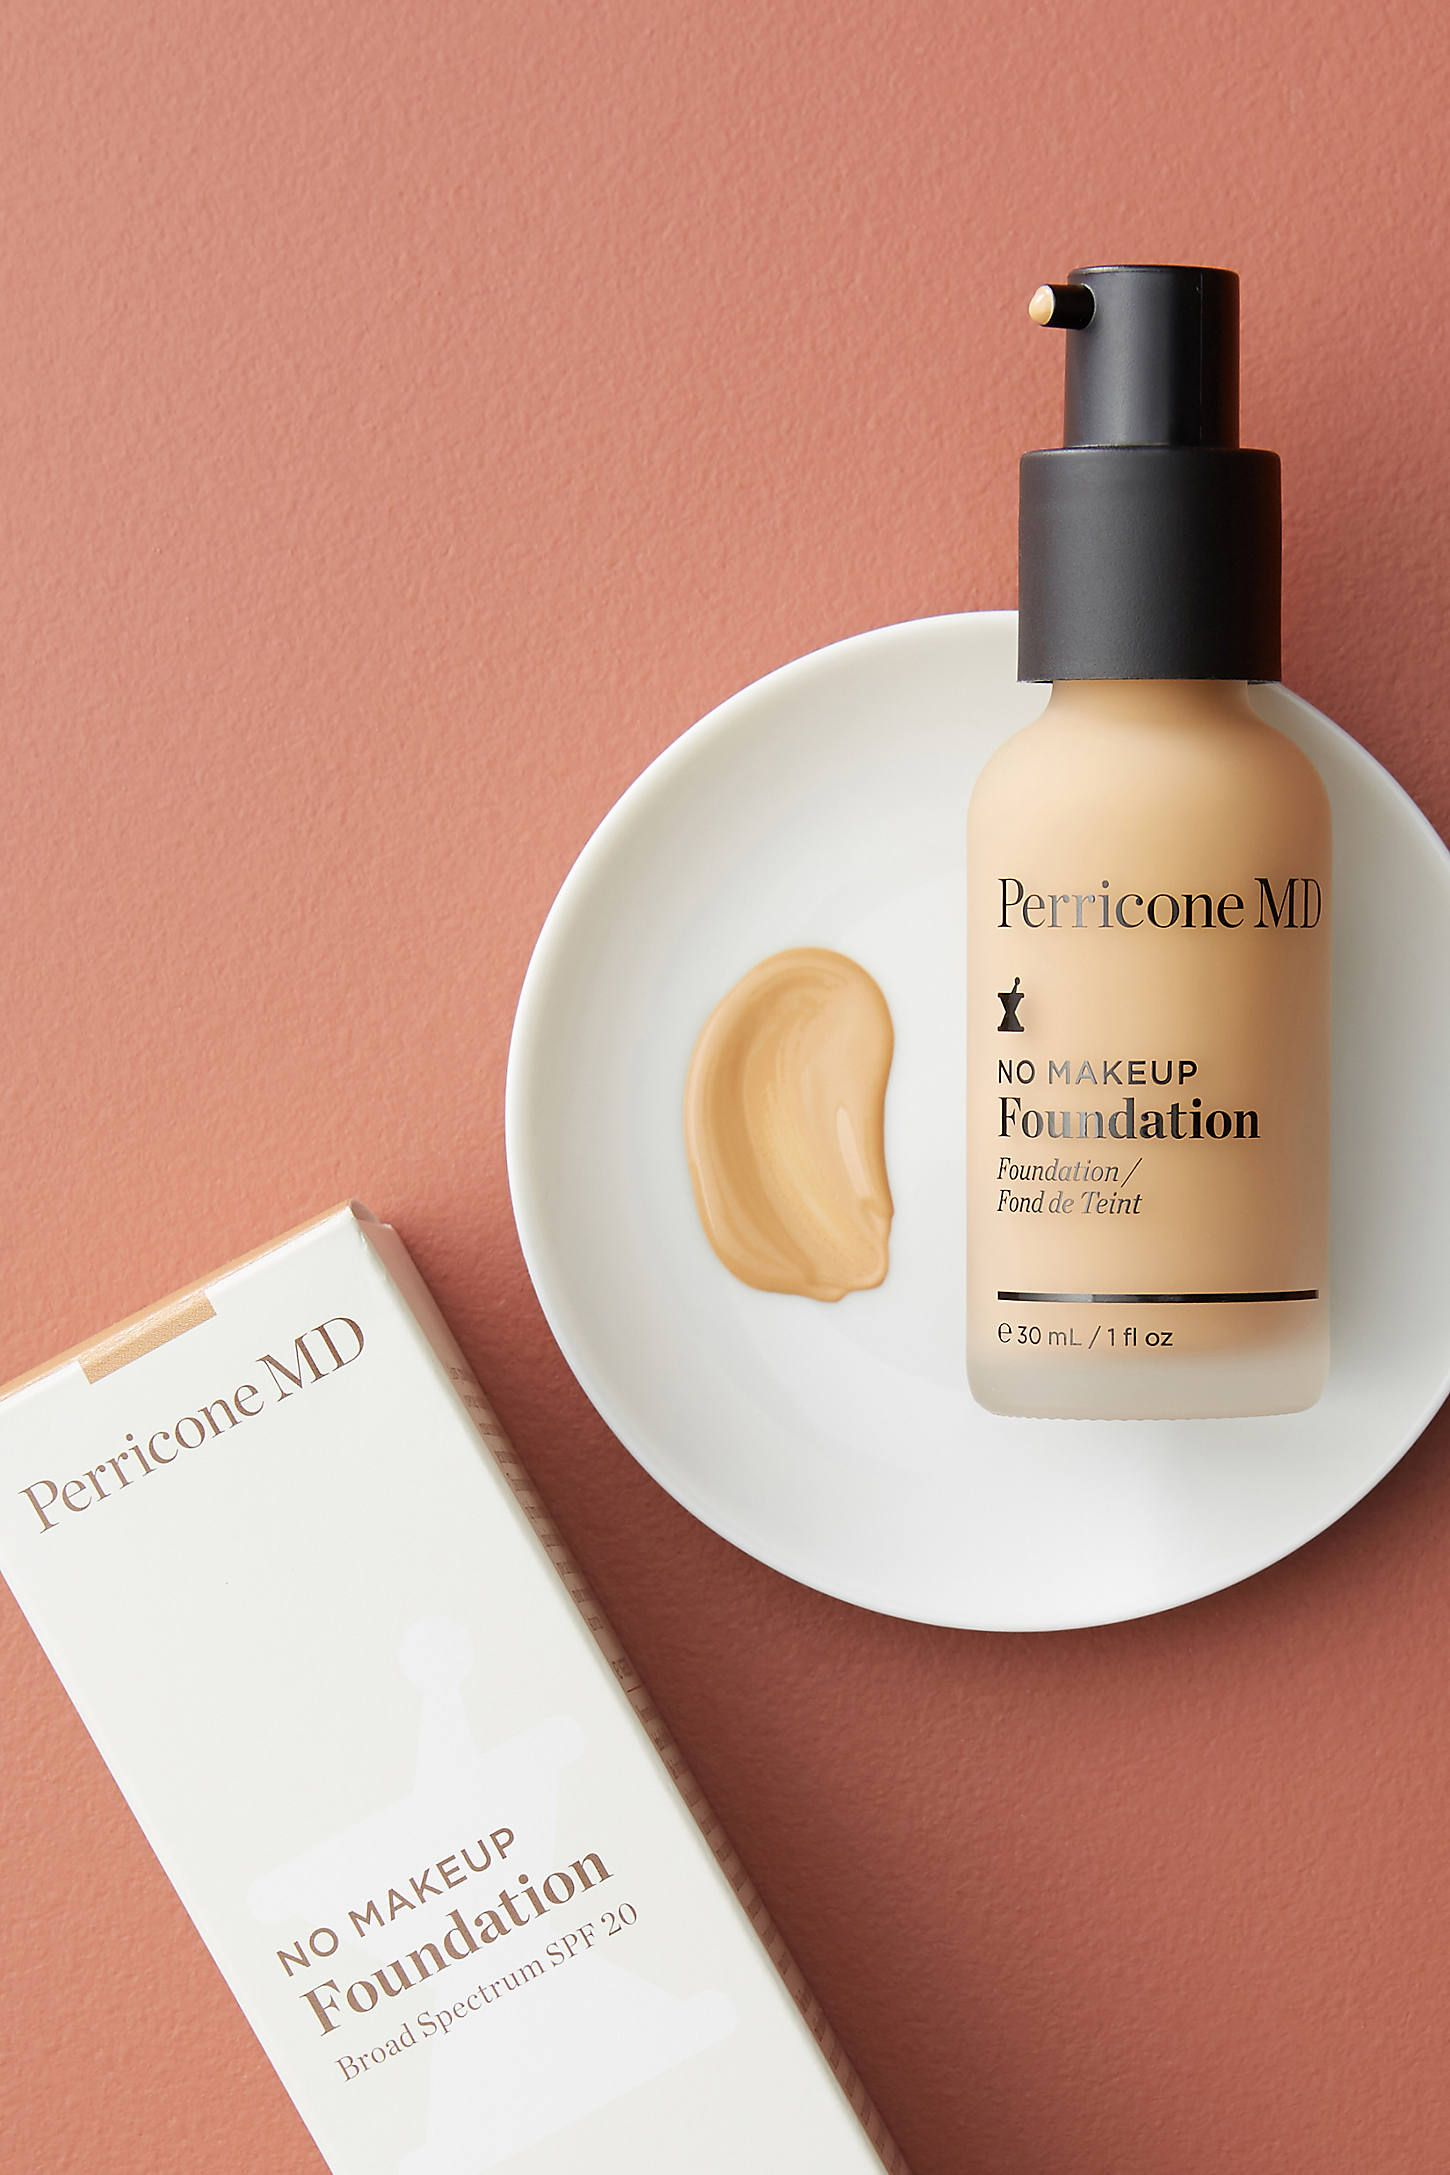 Perricone MD No Makeup Foundation Perricone md, Makeup